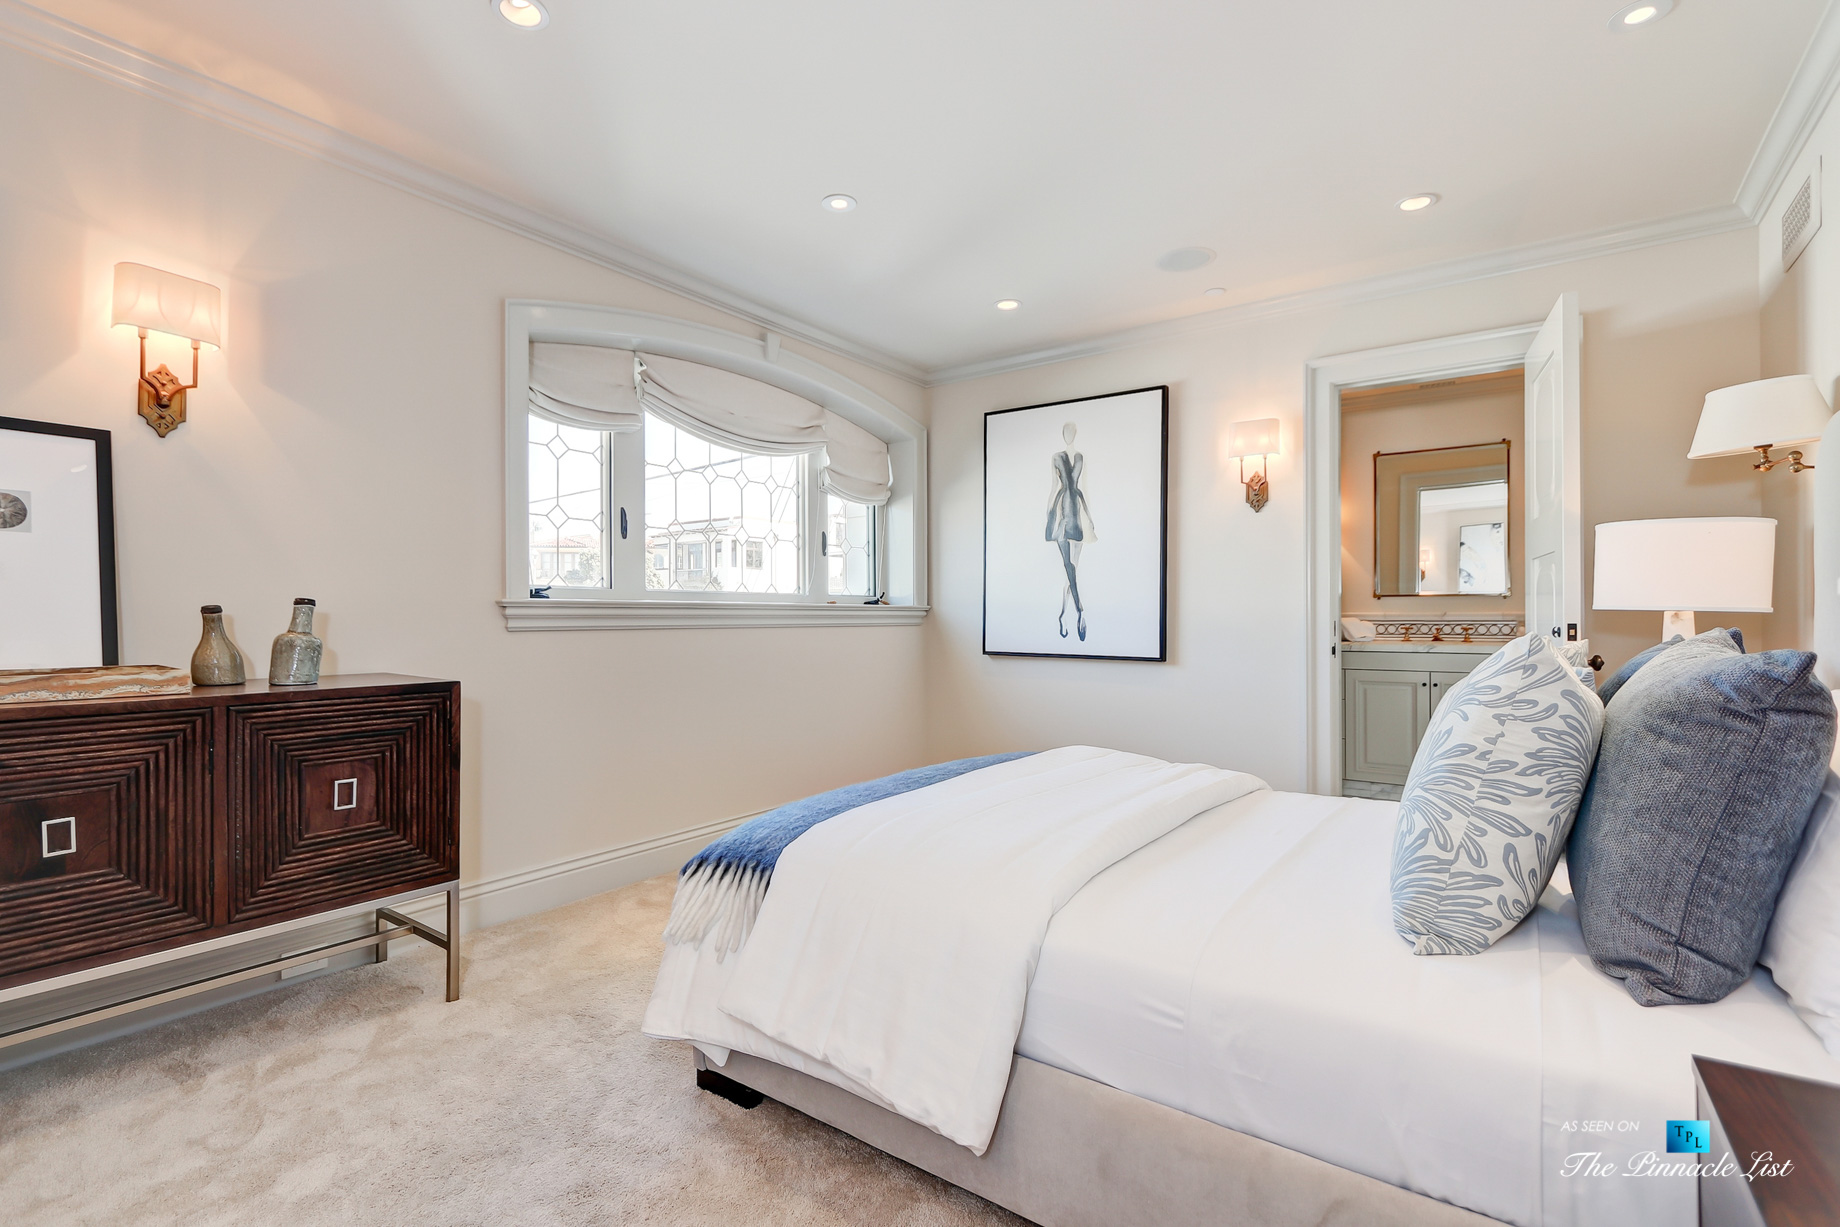 2806 The Strand, Hermosa Beach, CA, USA – Bedroom – Luxury Real Estate – Oceanfront Home